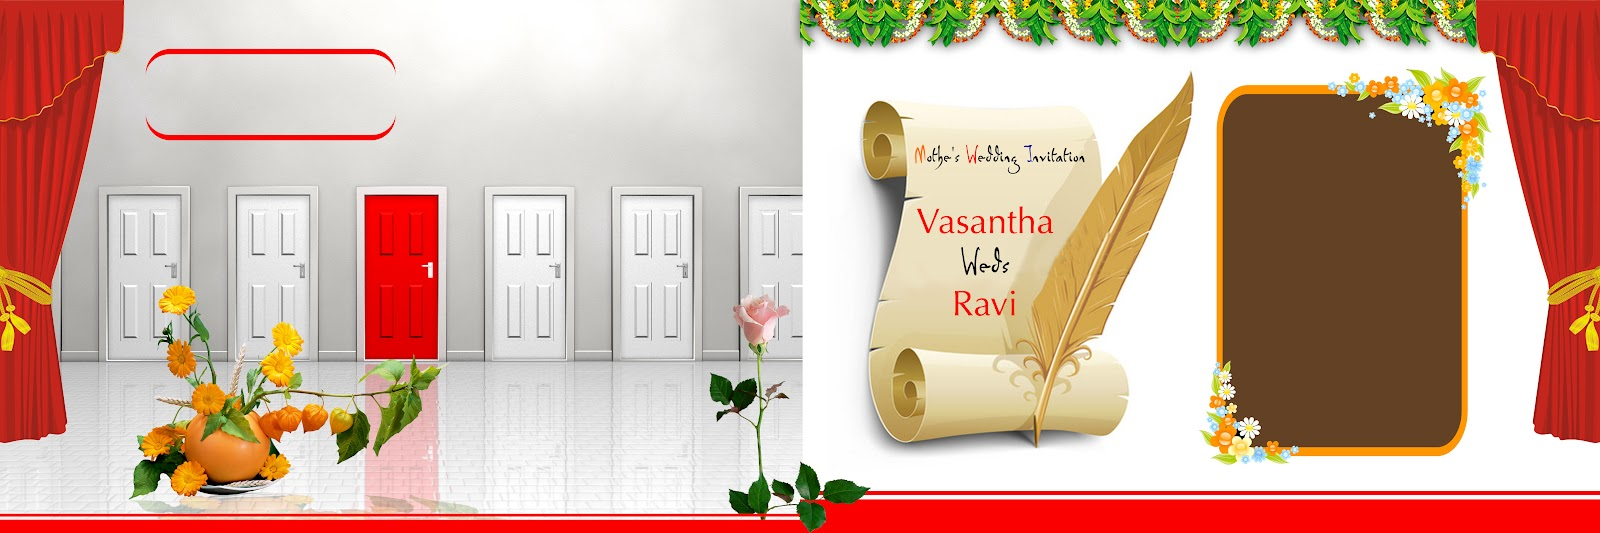 Digital banner design for psd files - 12x36_wedding_album_design_templates 12x36_wedding_album_design_templates